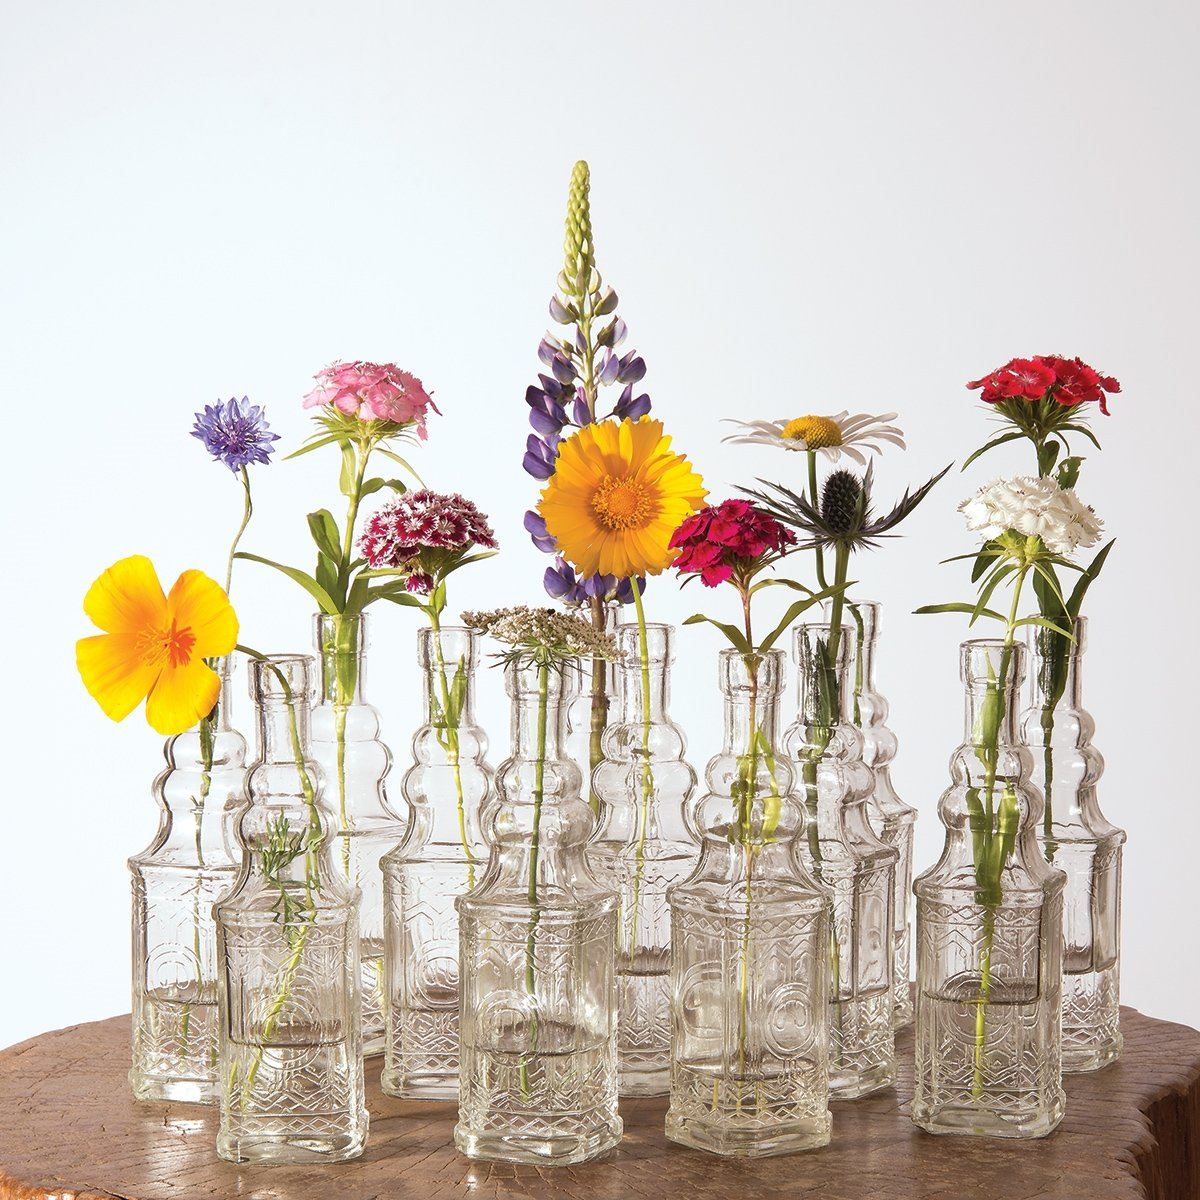 Wedding Flower Vases Wholesale: Luna Bazaar Small Vintage Glass Bottle Set (6.5-Inch